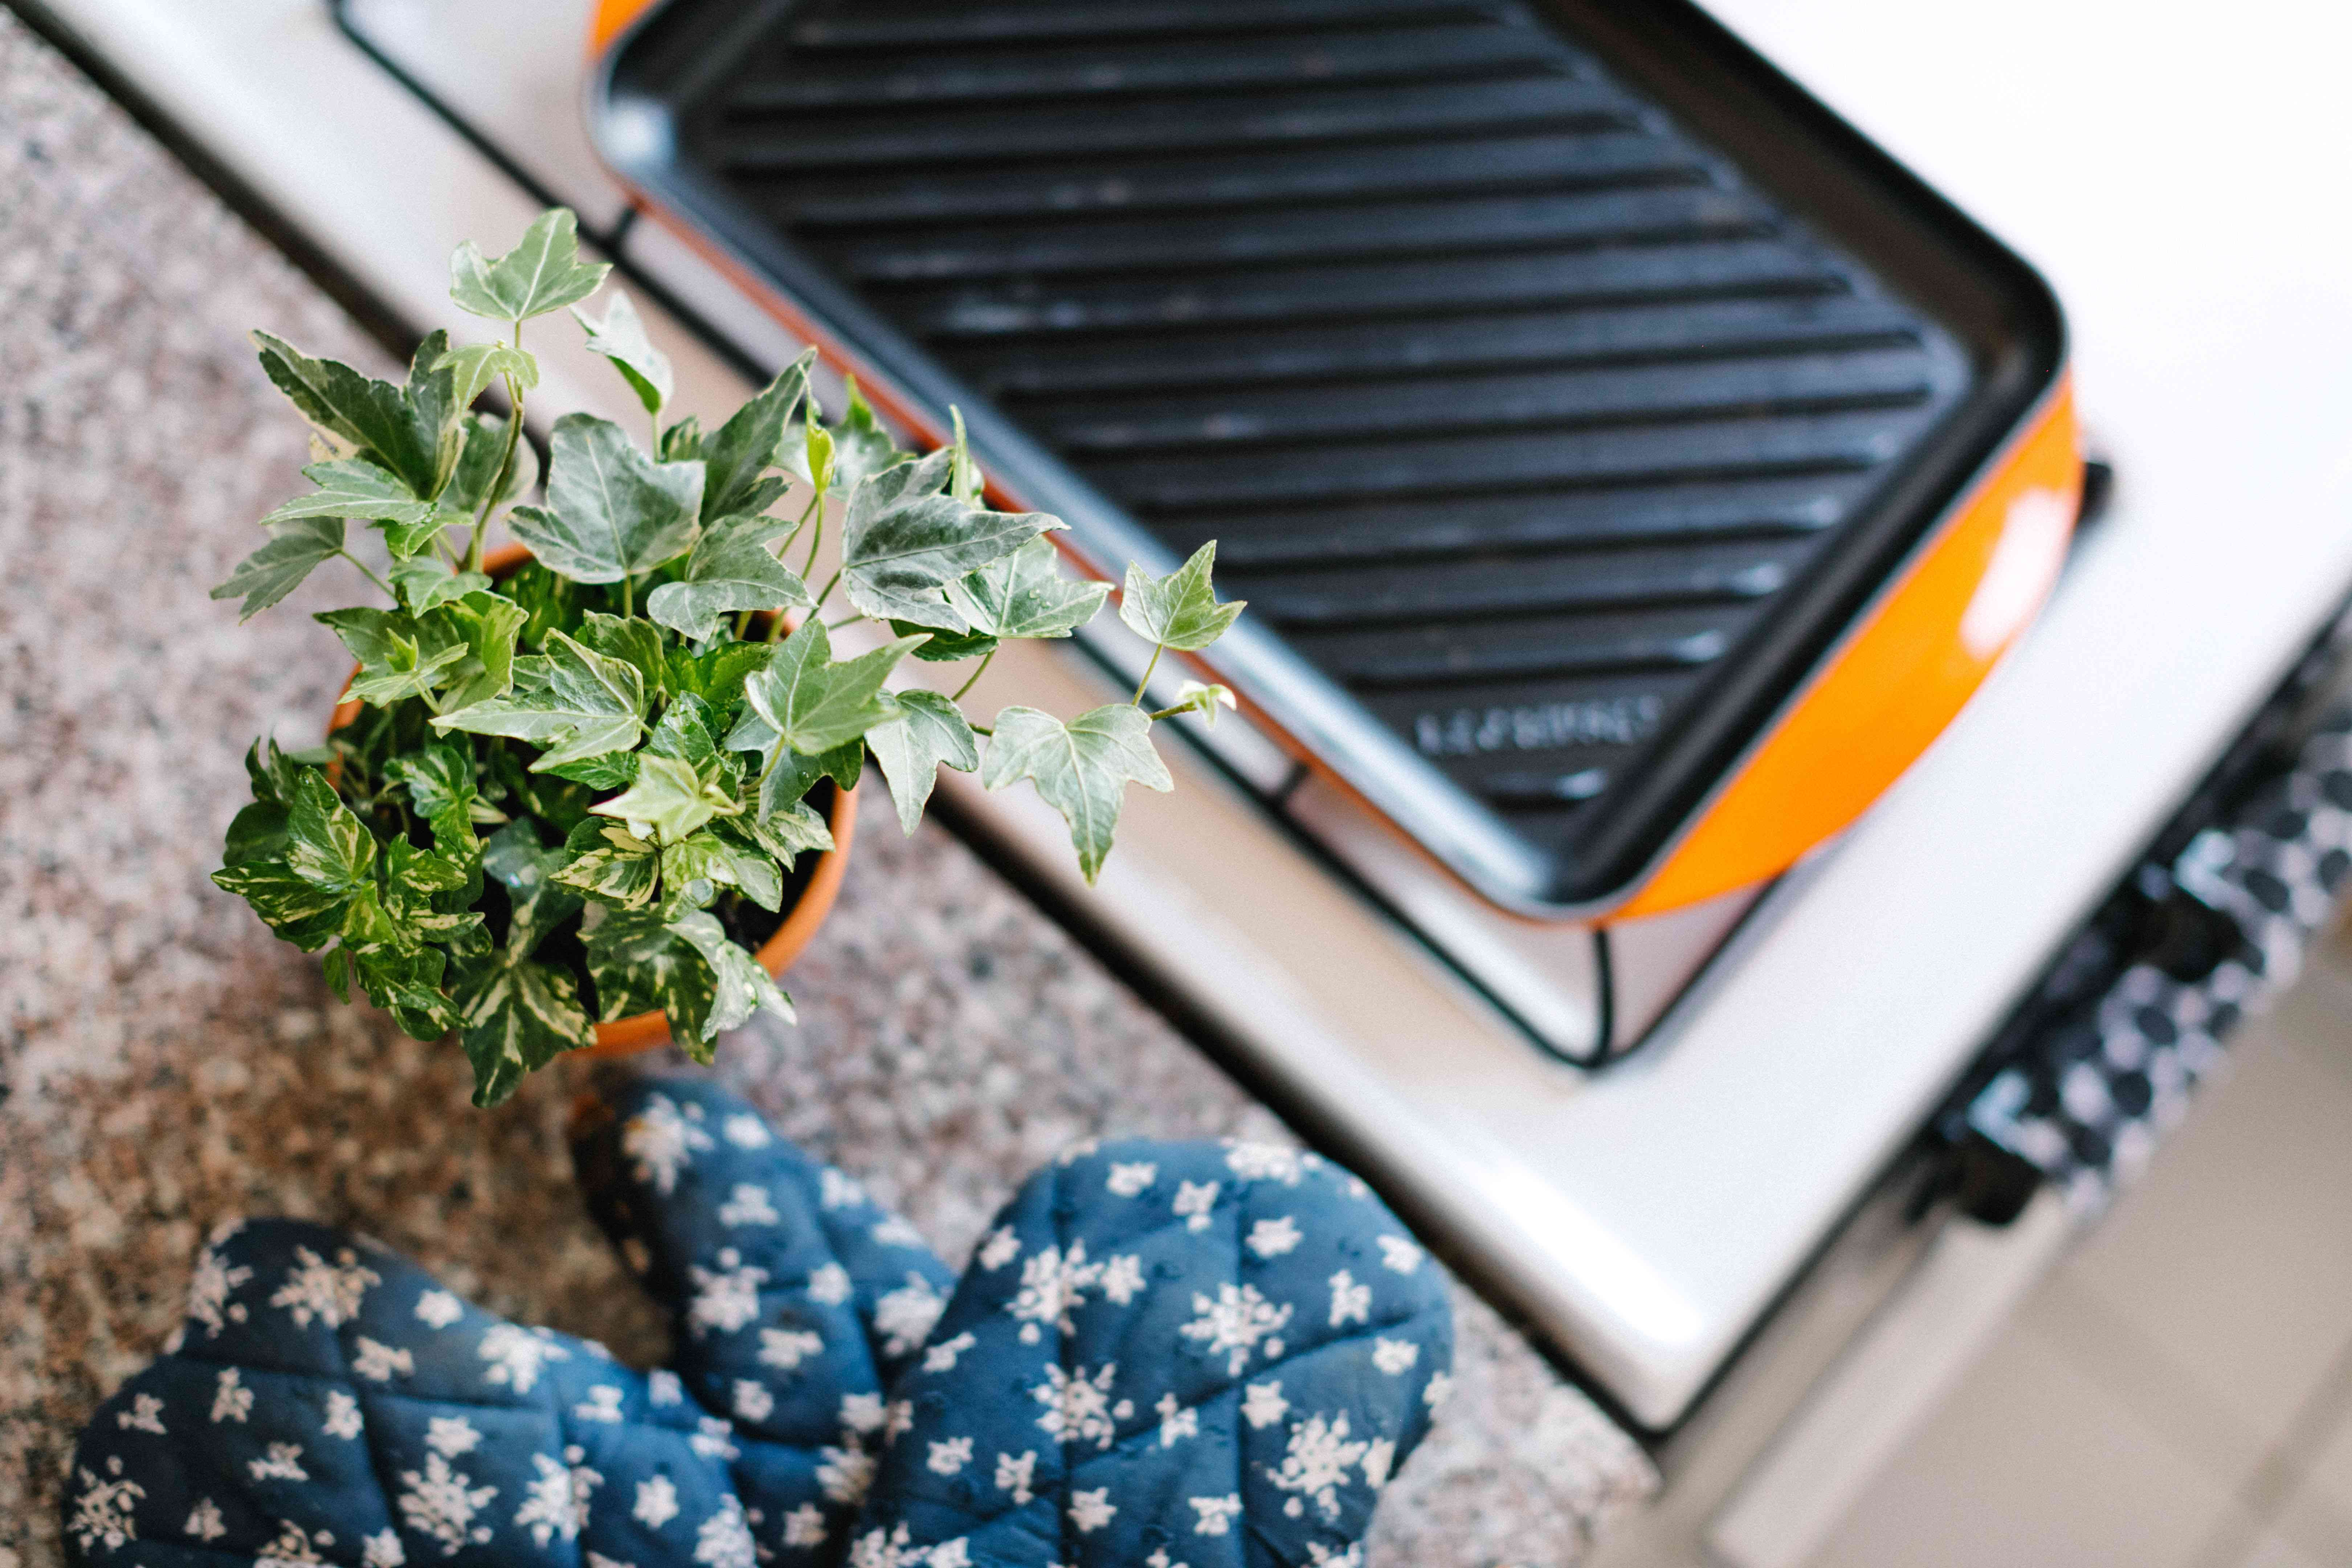 English ivy plant next to kitchen mitt and hot plate